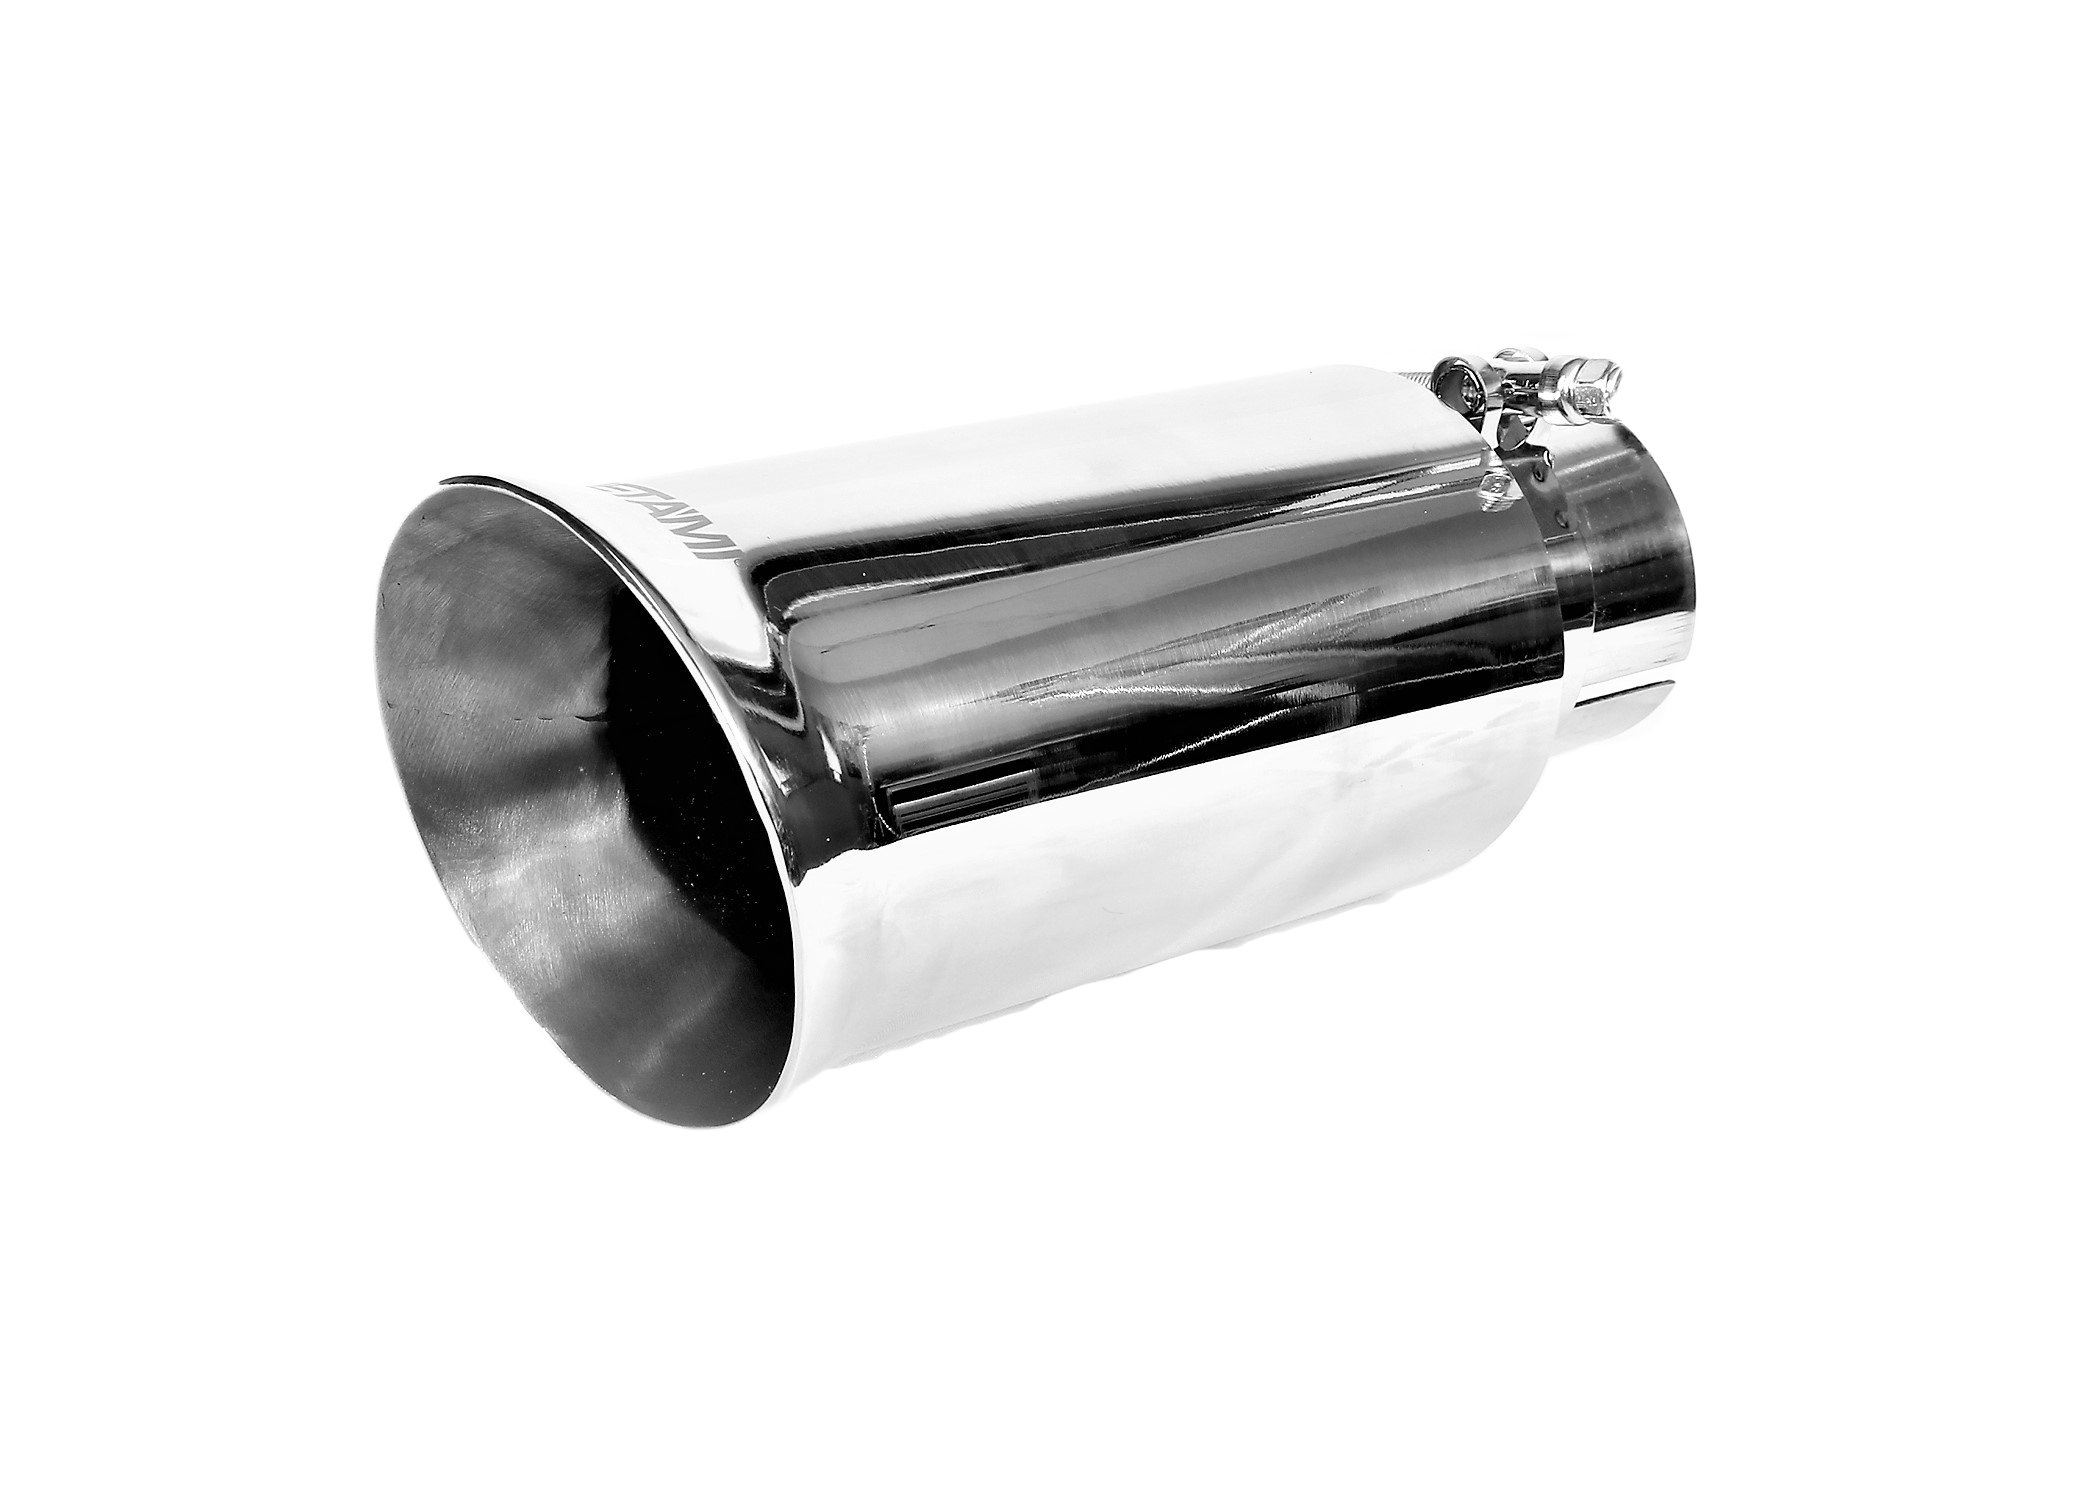 NETAMI NT-2417 Double Wall Mirror Polished T304 Stainless Steel Exhaust Tip Slant Clamp-on Inlet 2.35'', Outlet 4'', Overall Lenght 9''